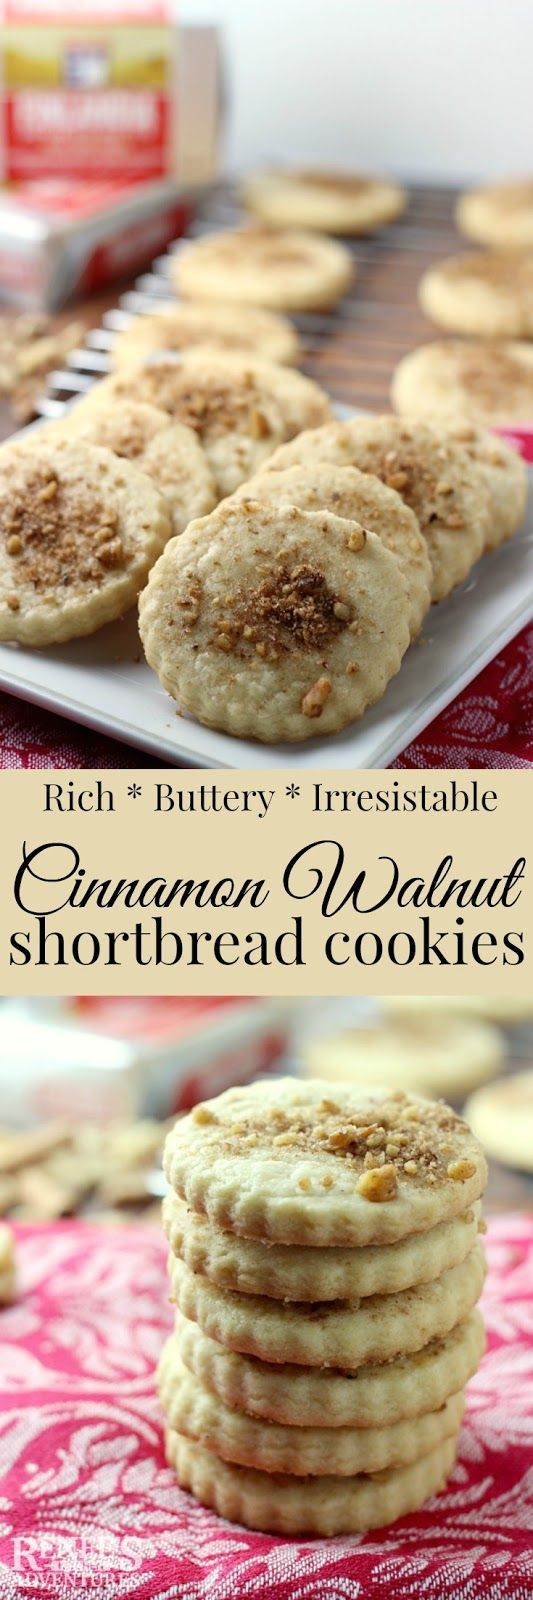 Cinnamon Walnut Shortbread Cookies | Easy cookie recipe for butet cinnamon walnut topping. Perfect for the holidays or Christmas cookie tray. #ad #FinlandiaButter @finlandiacheese